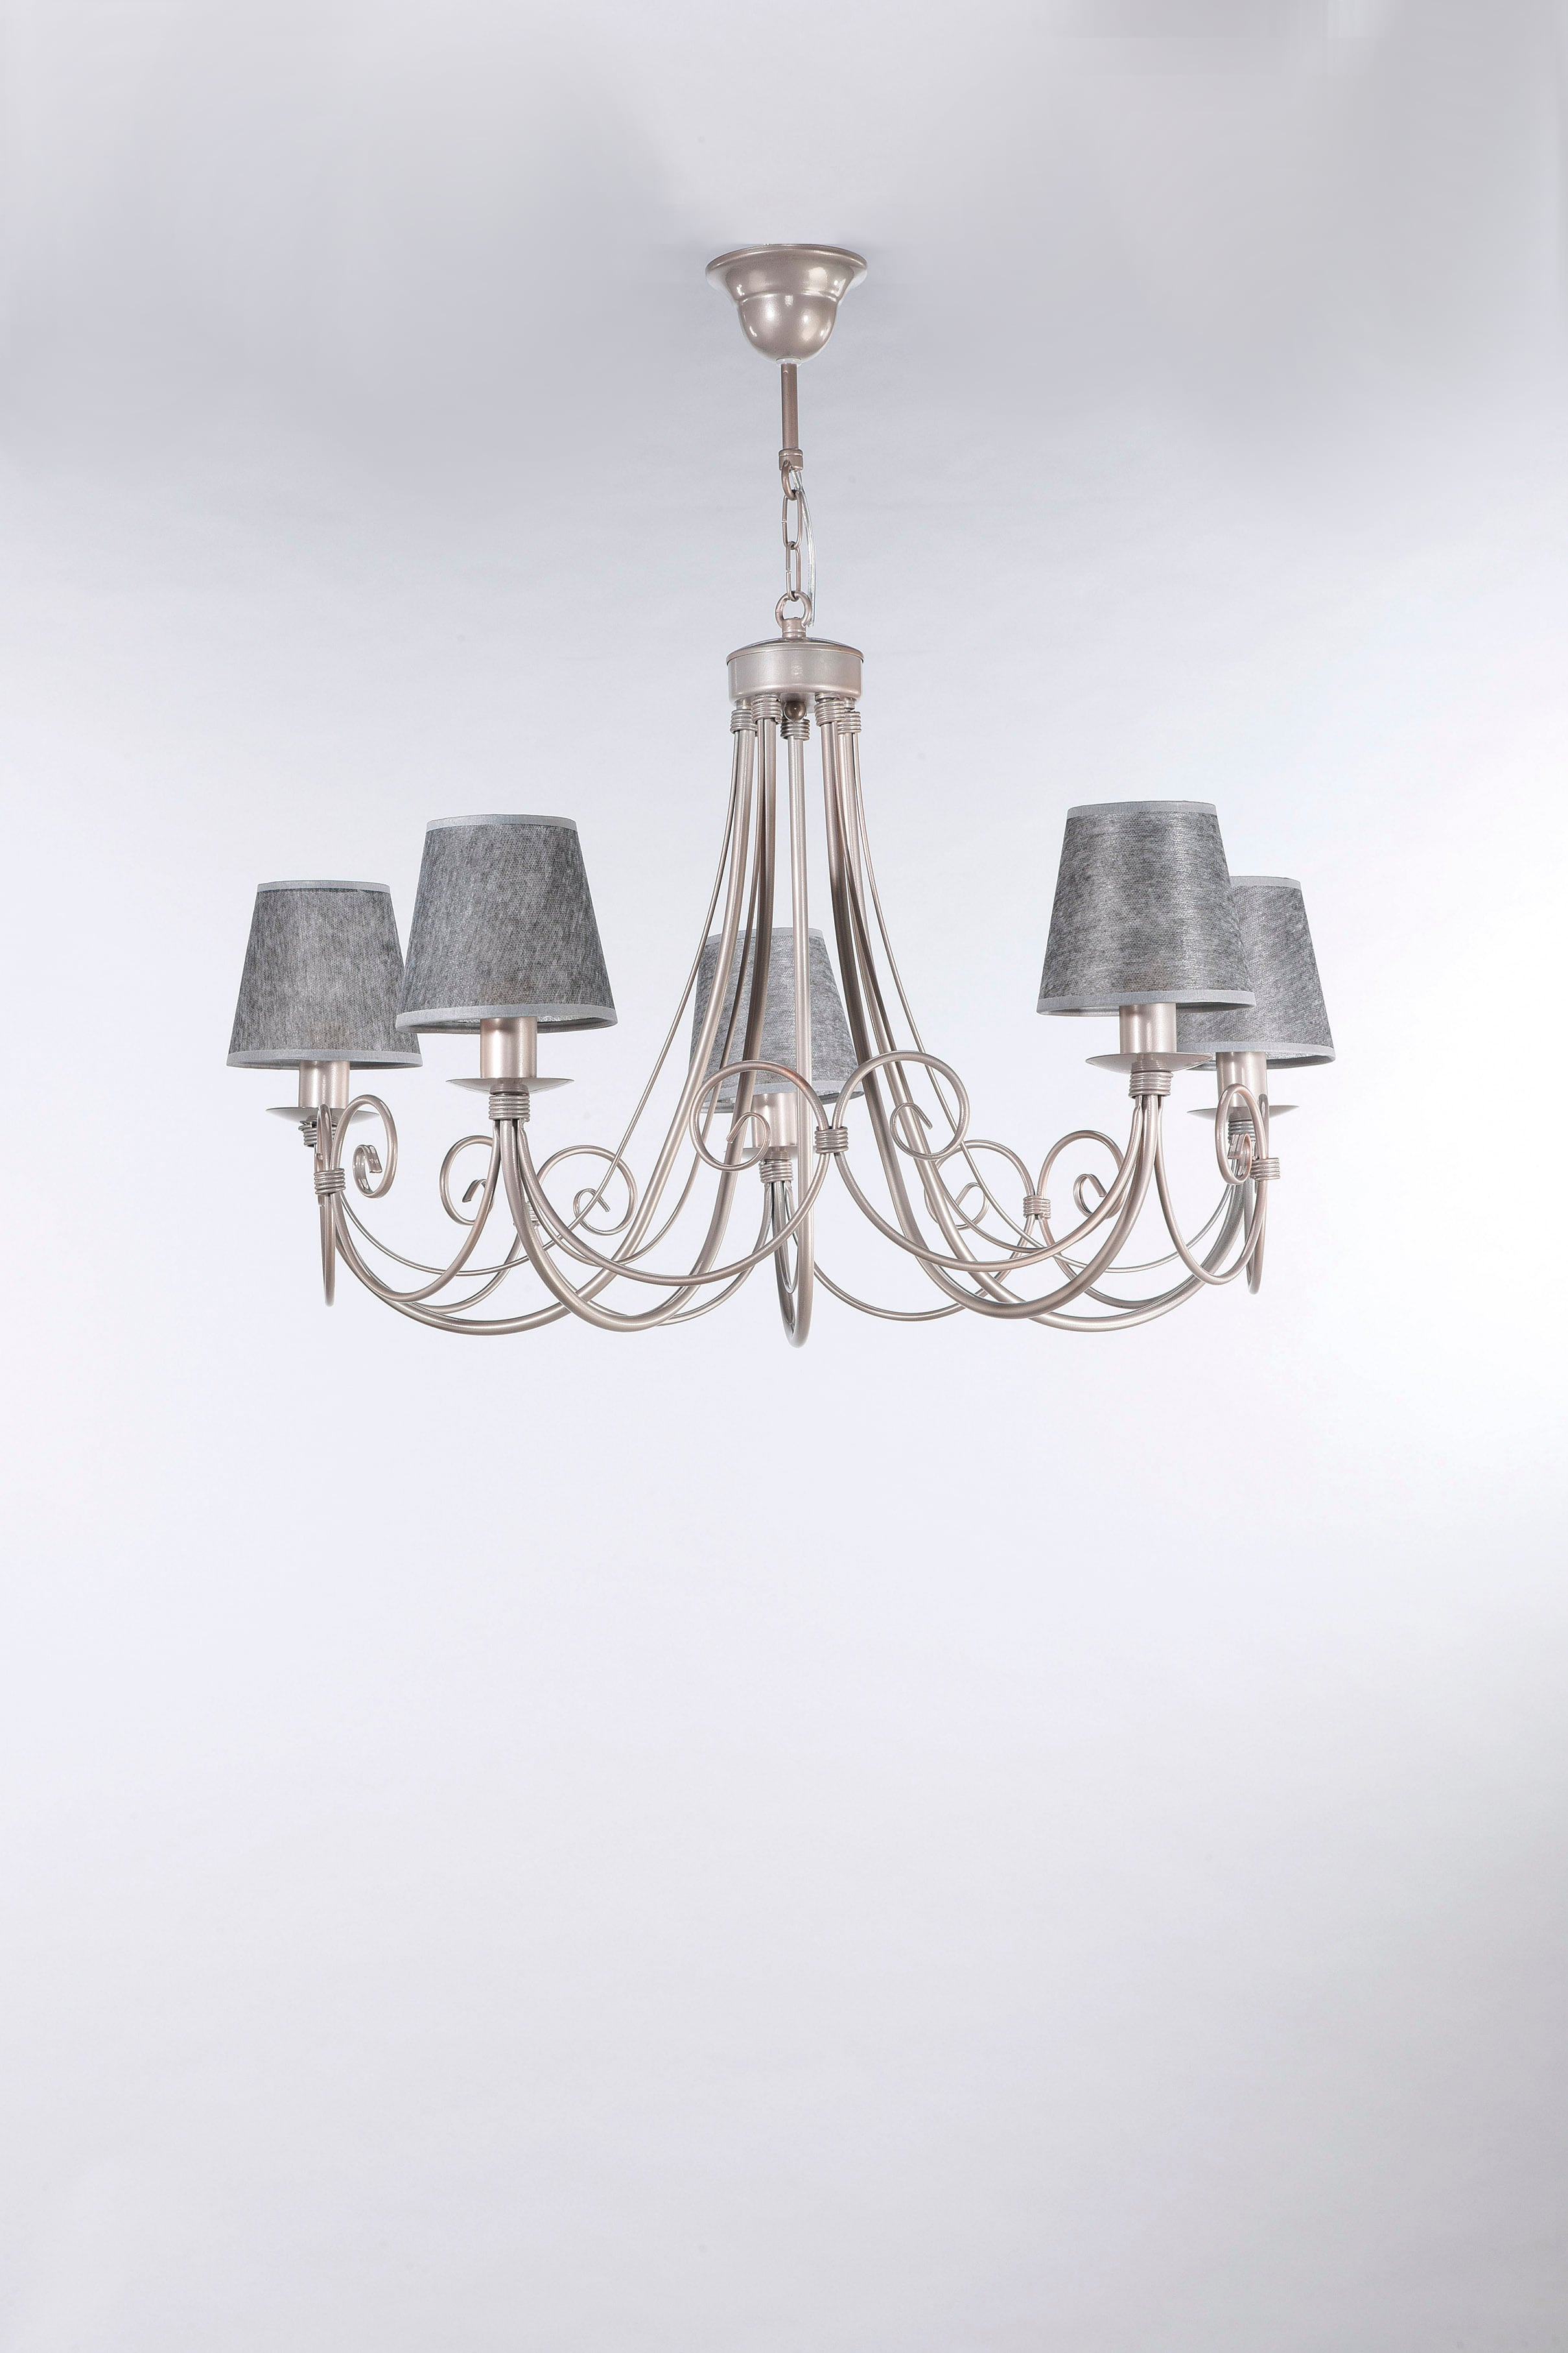 Hanging Lamp SYRIUSZ SATYNA zk-5 No. 3445